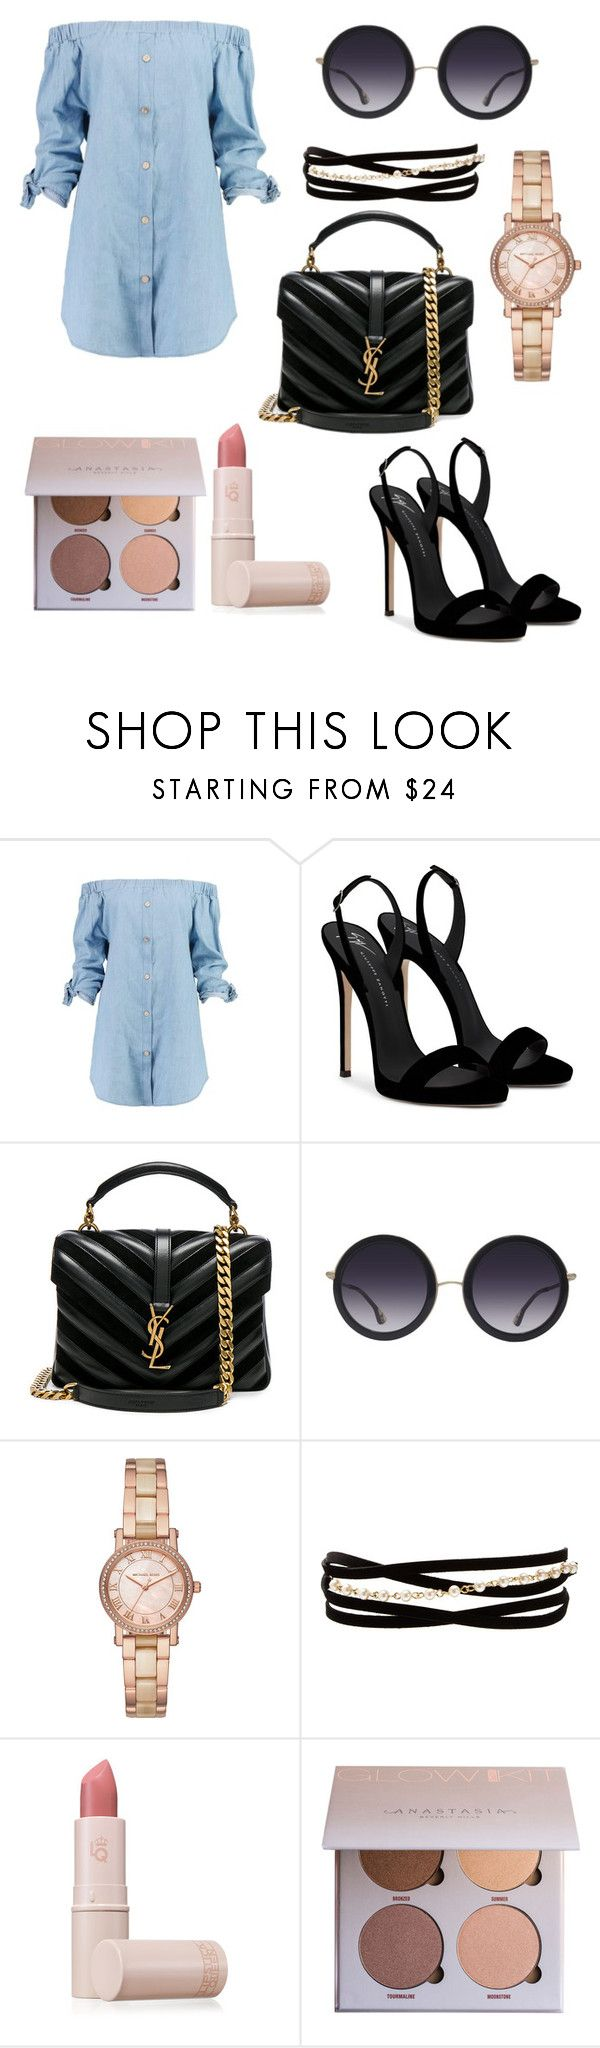 """Untitled #76"" by biswajit-prabhu ❤ liked on Polyvore featuring Boohoo, Giuseppe Zanotti, Yves Saint Laurent, Alice + Olivia, Michael Kors, Kenneth Jay Lane and Lipstick Queen"